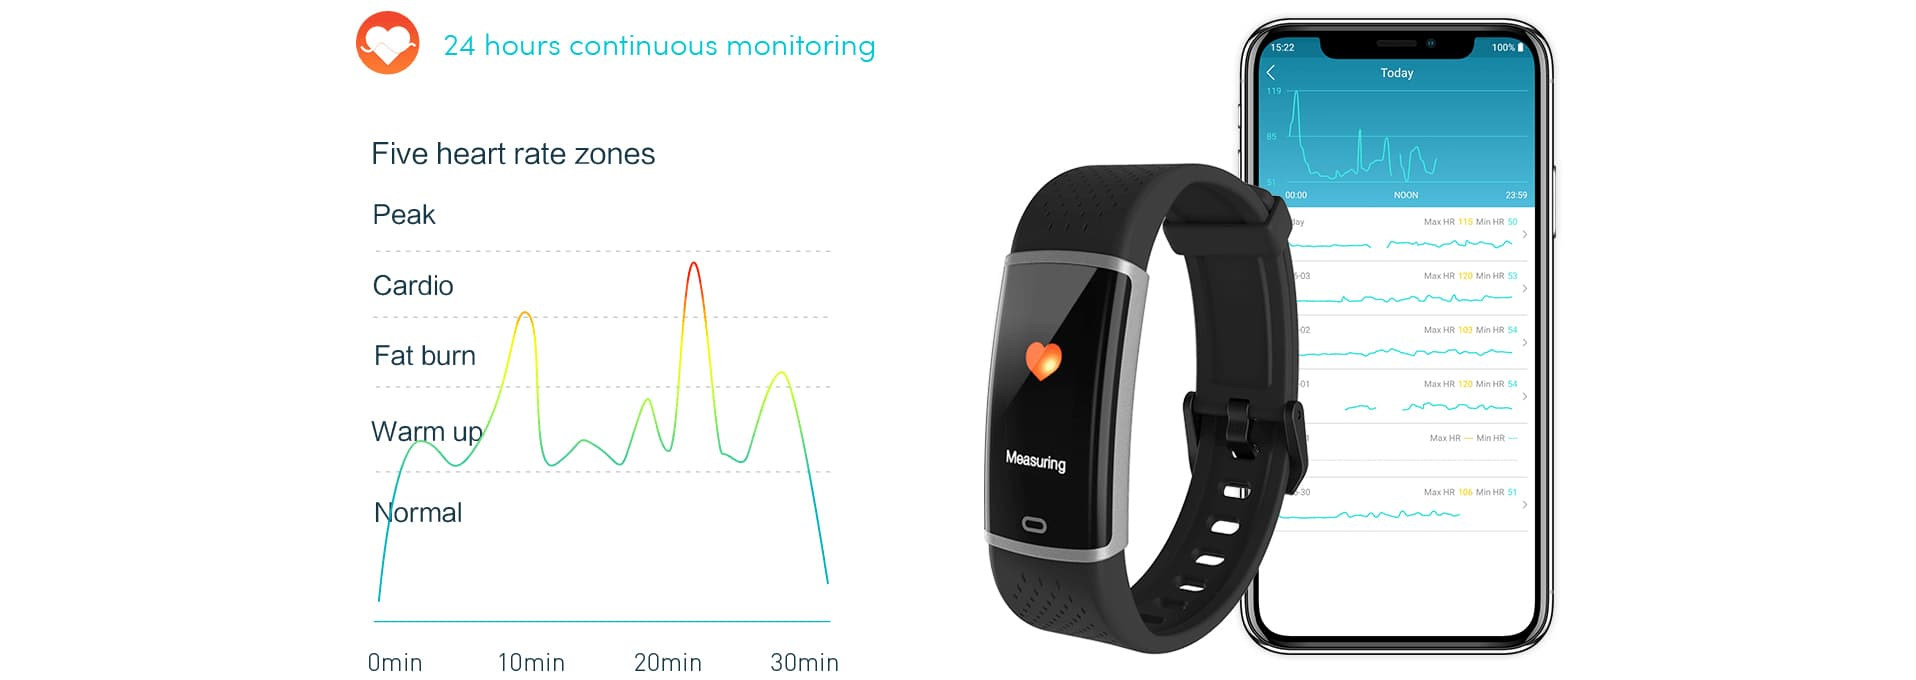 Real-Time Continued Heart Rate